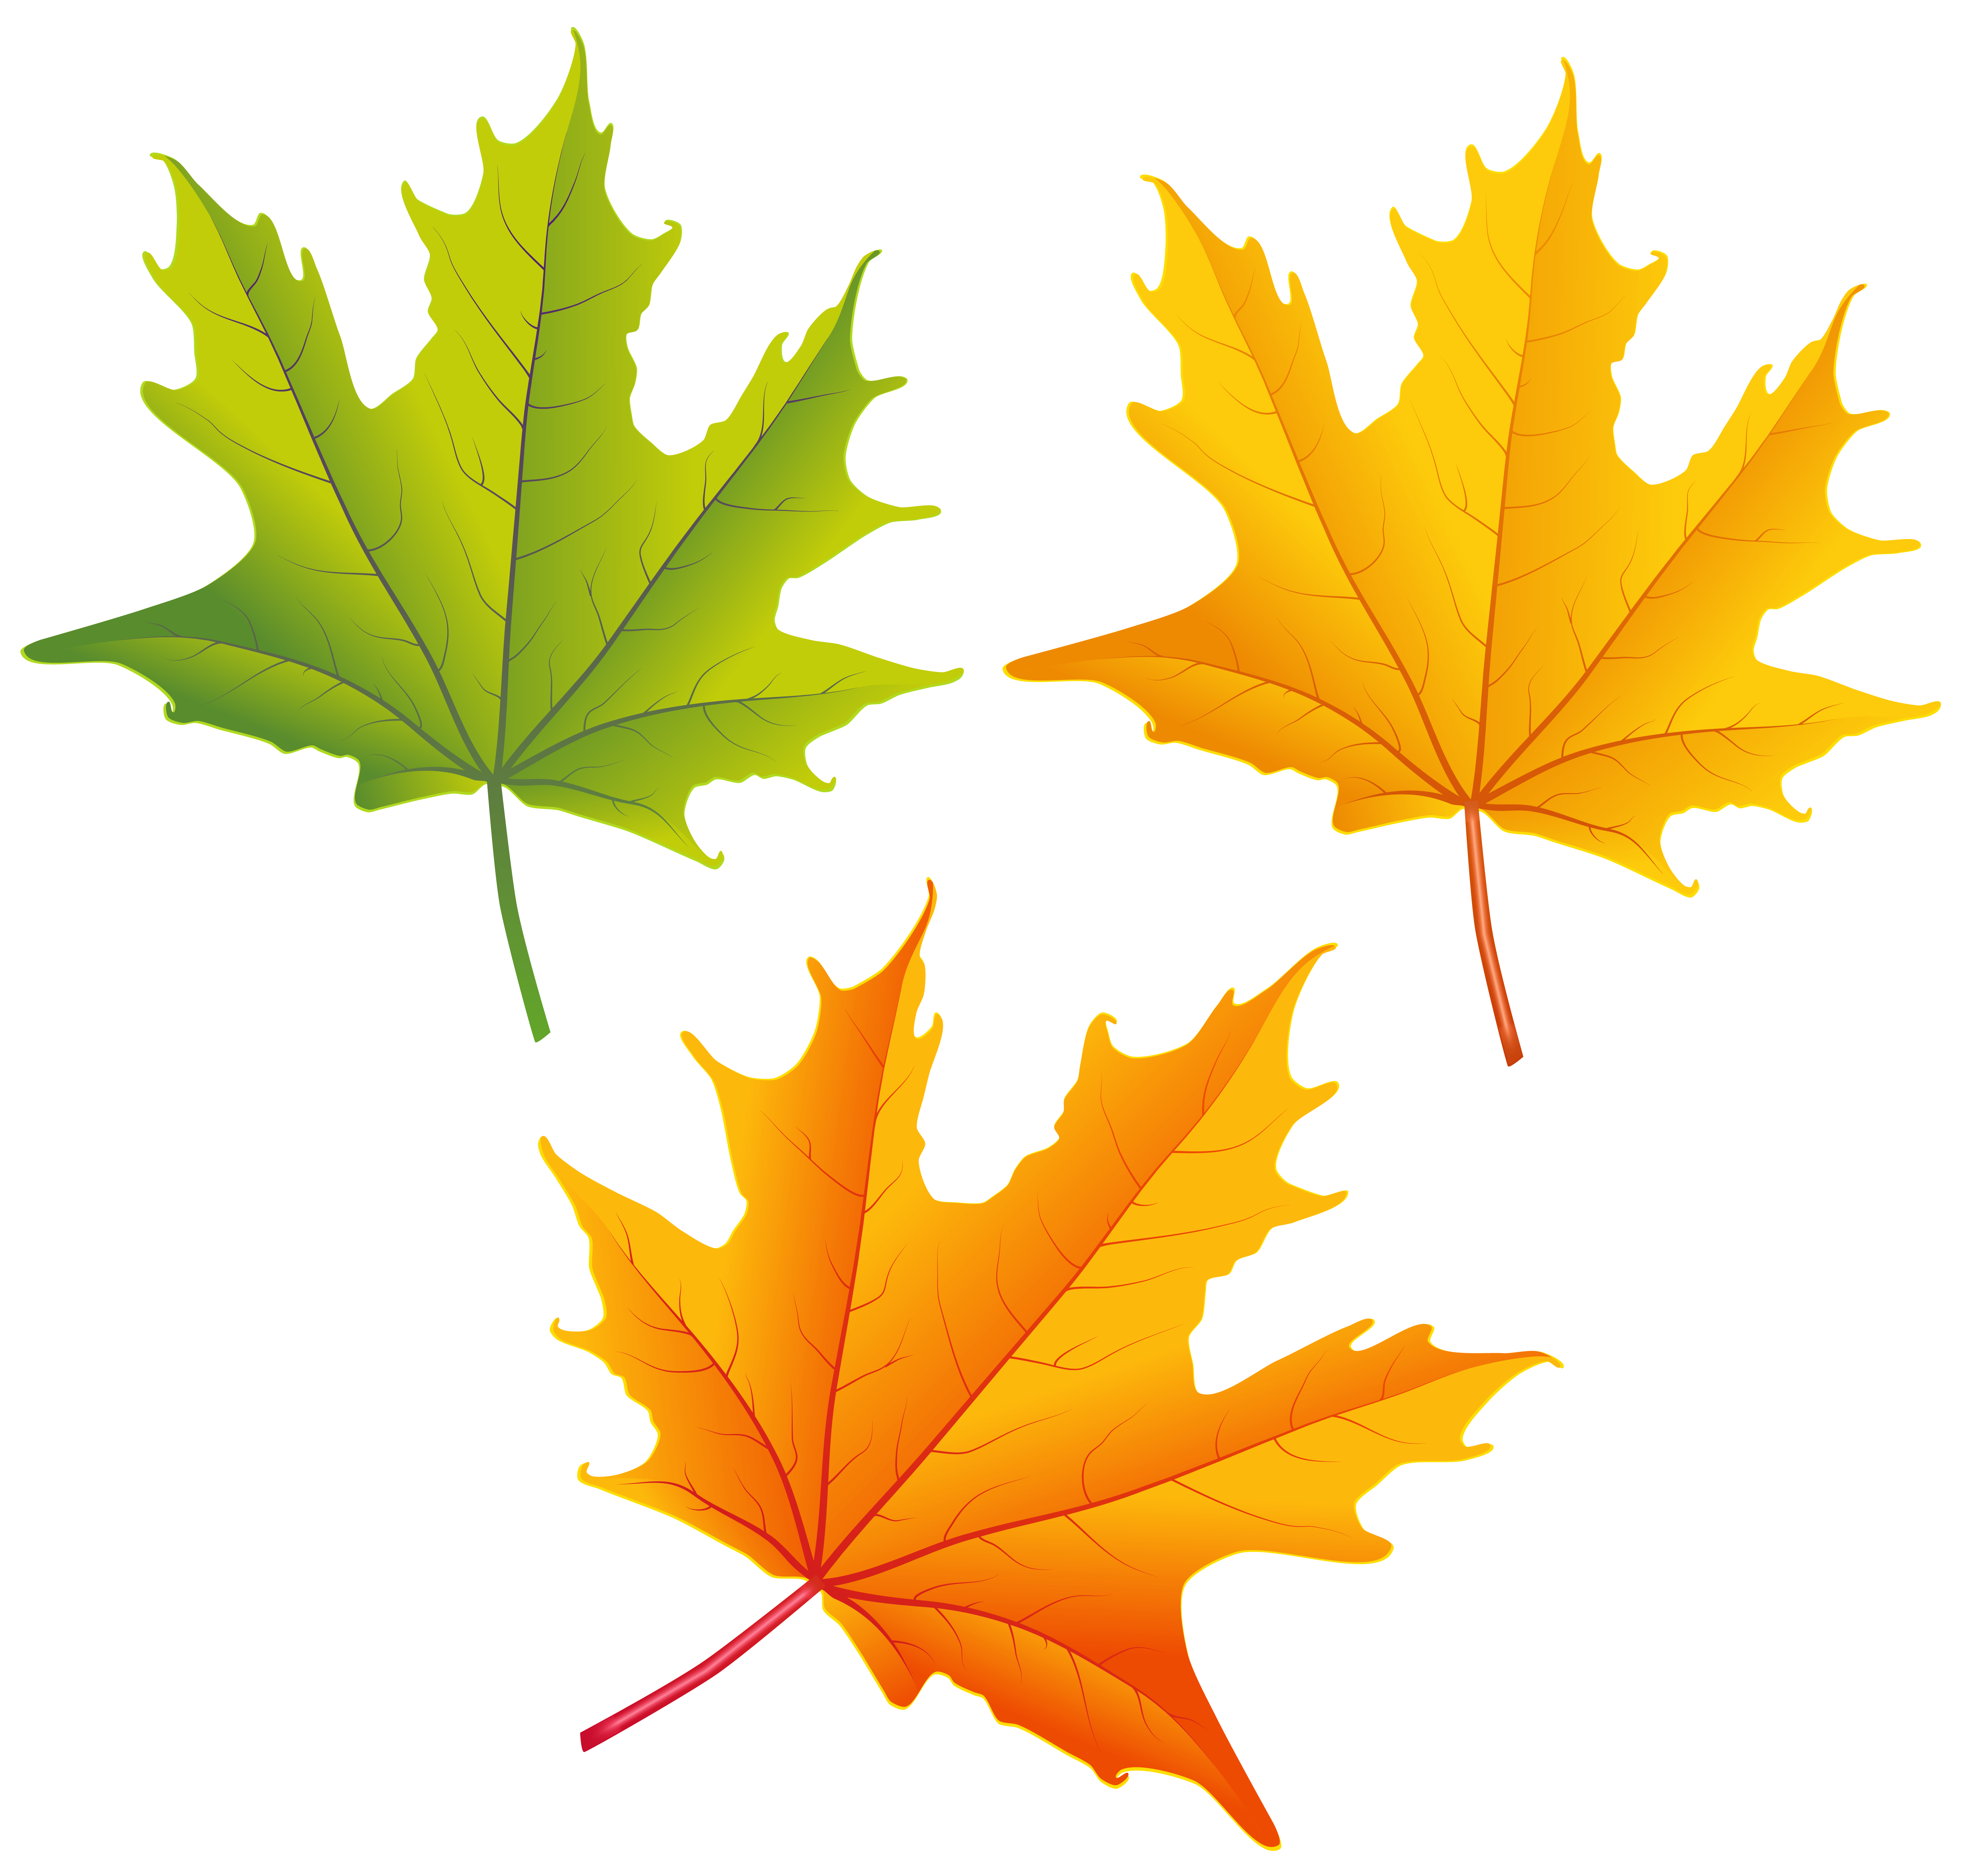 Fall Leaf Clipart No Background | Free download on ClipArtMag